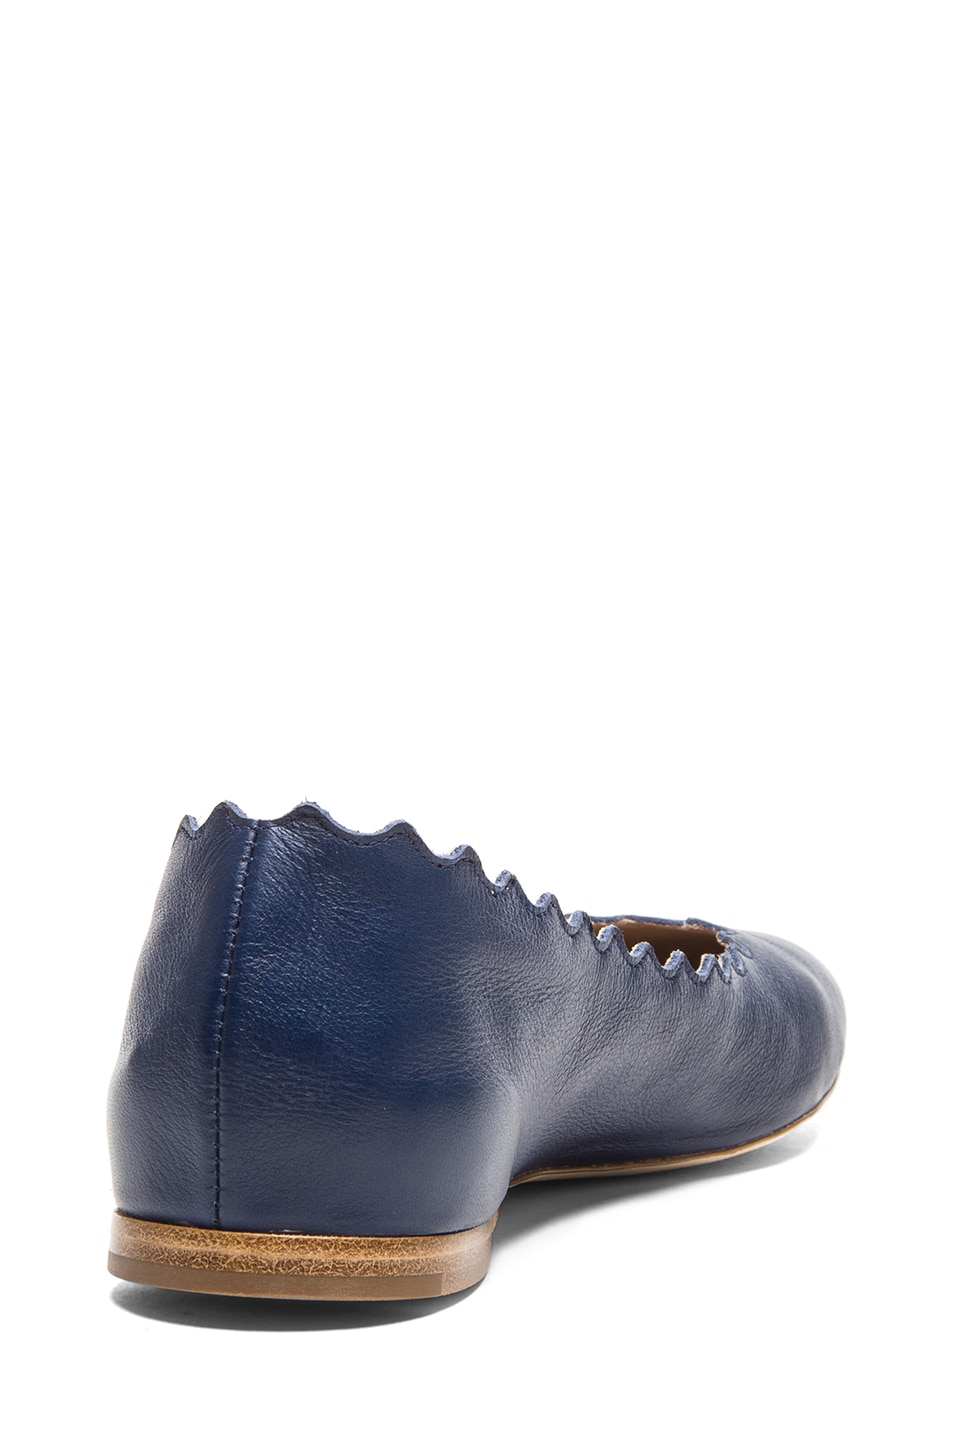 Image 3 of Chloe Lambskin Leather Scalloped Flats in Royal Navy